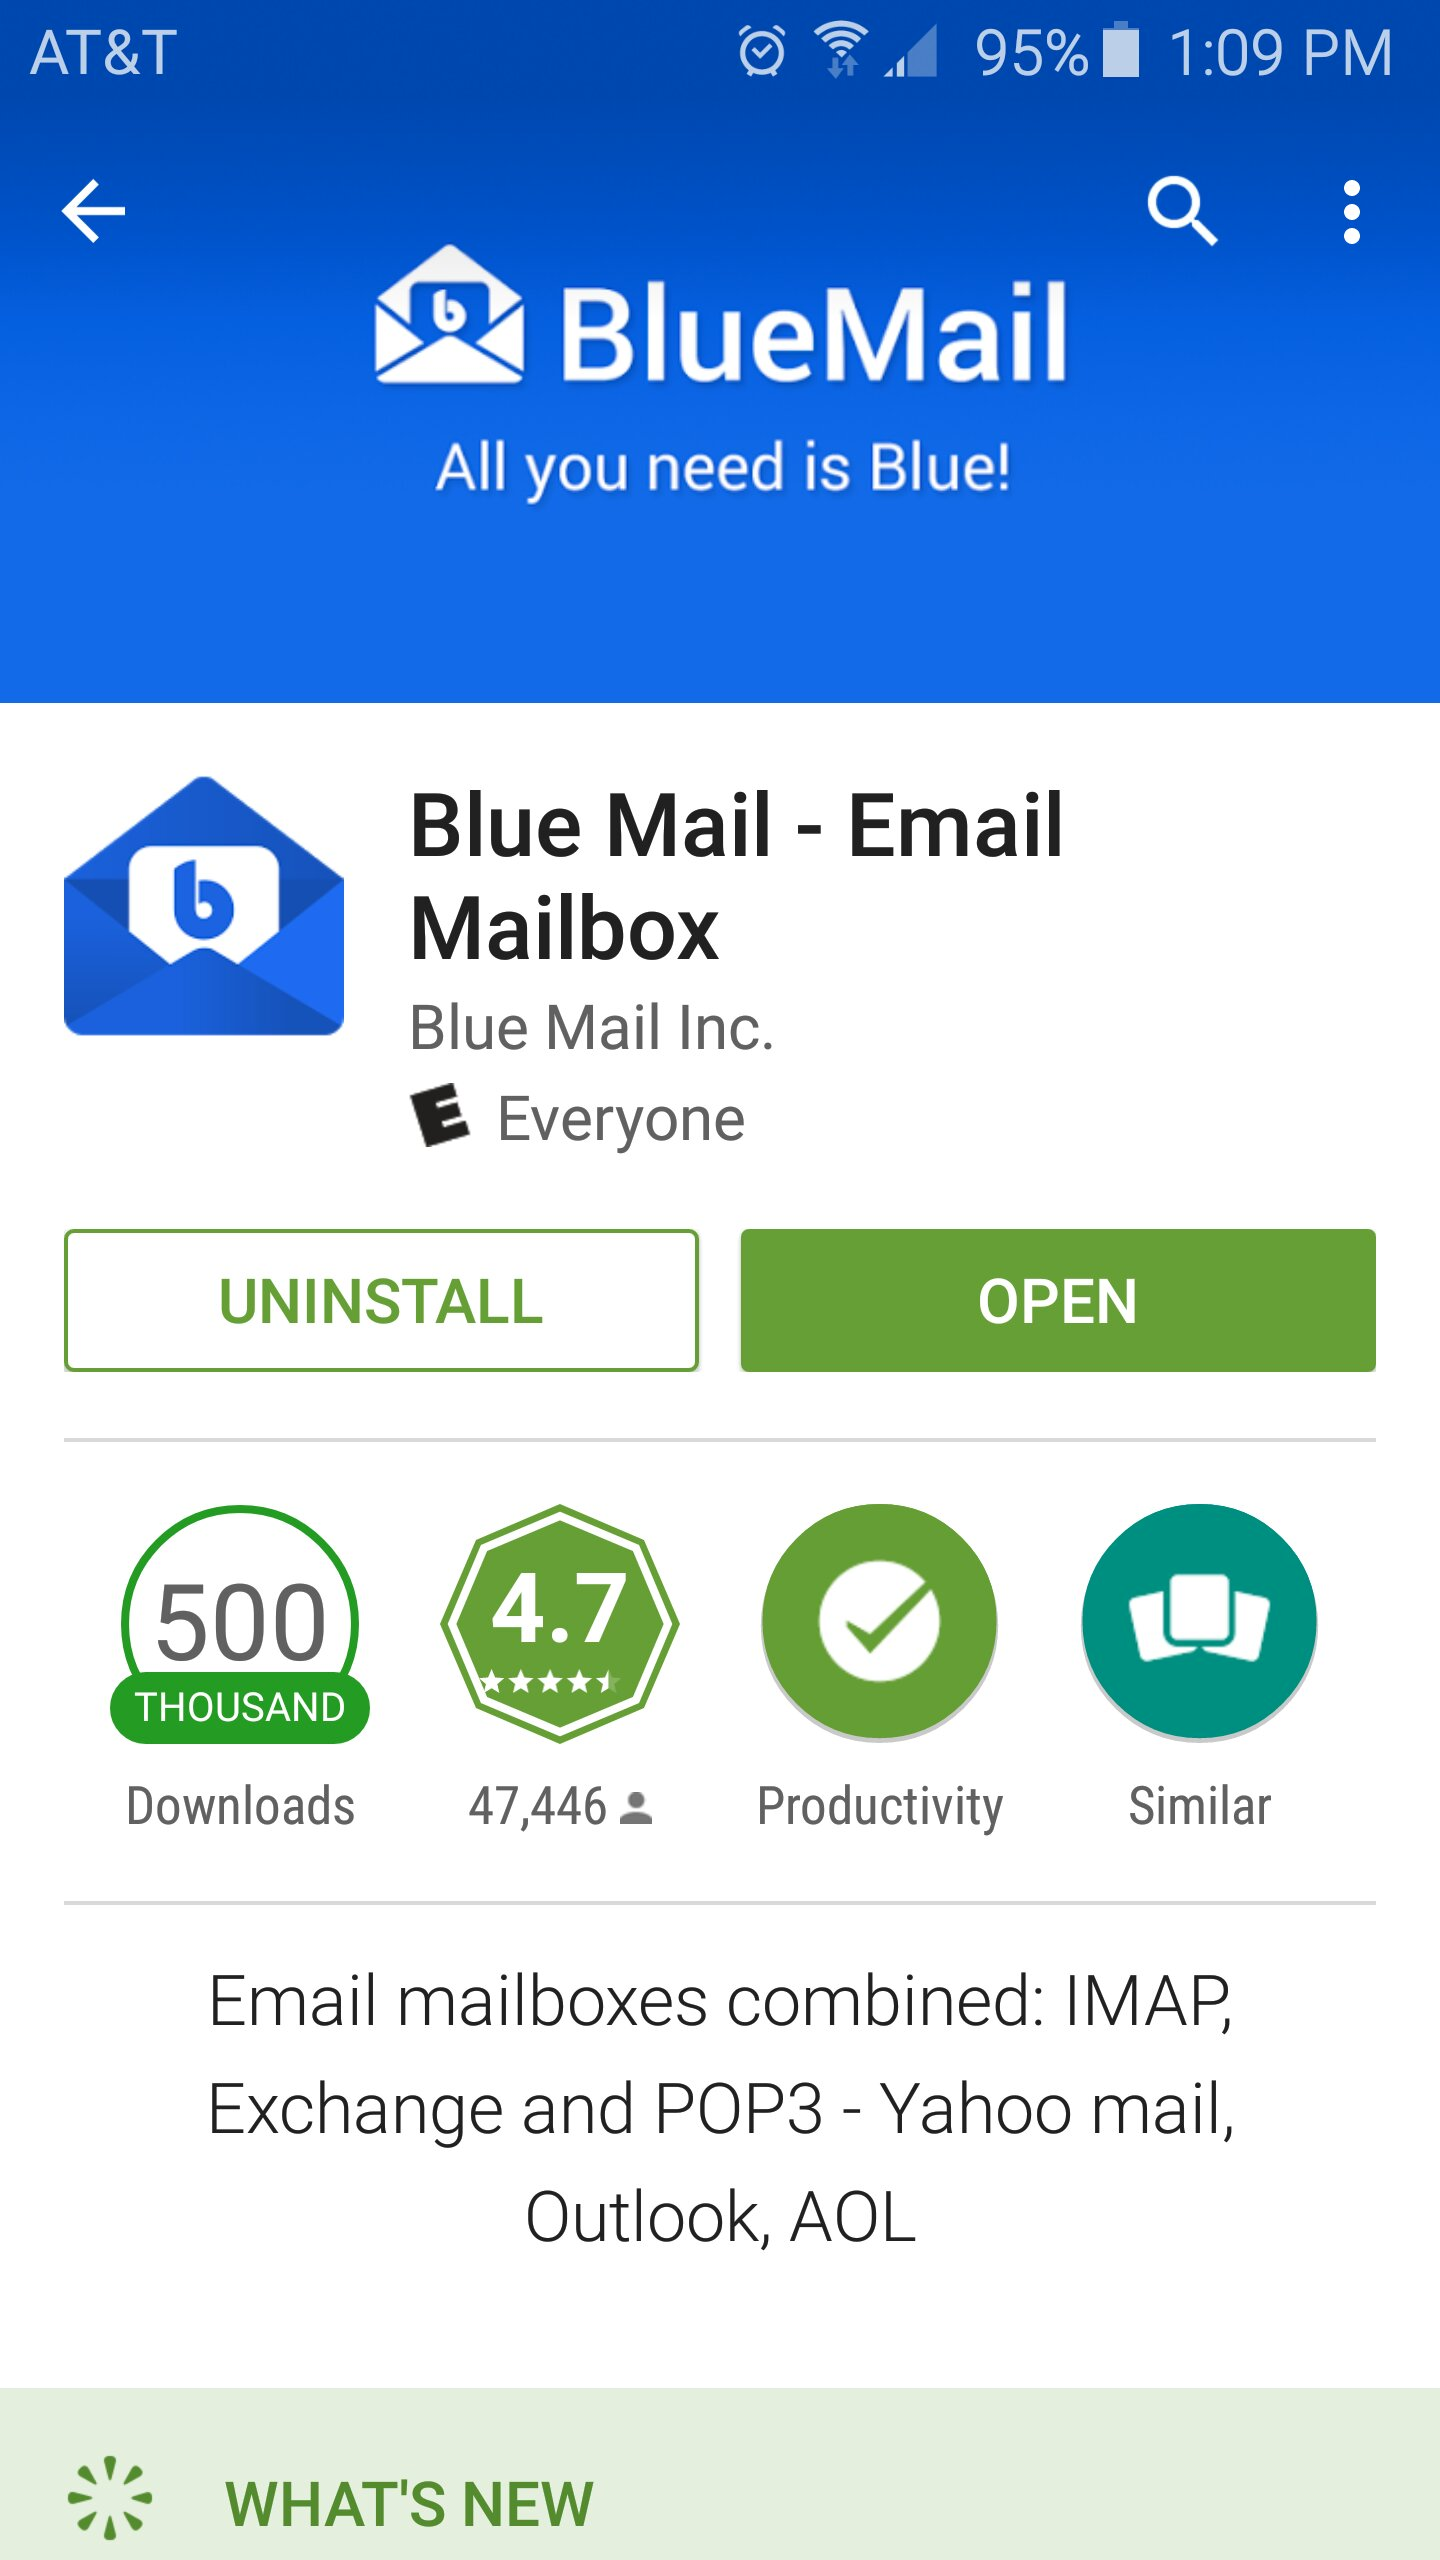 Try Out This One, Check Out The Screenshot, Blue Mail In My Opinion Is